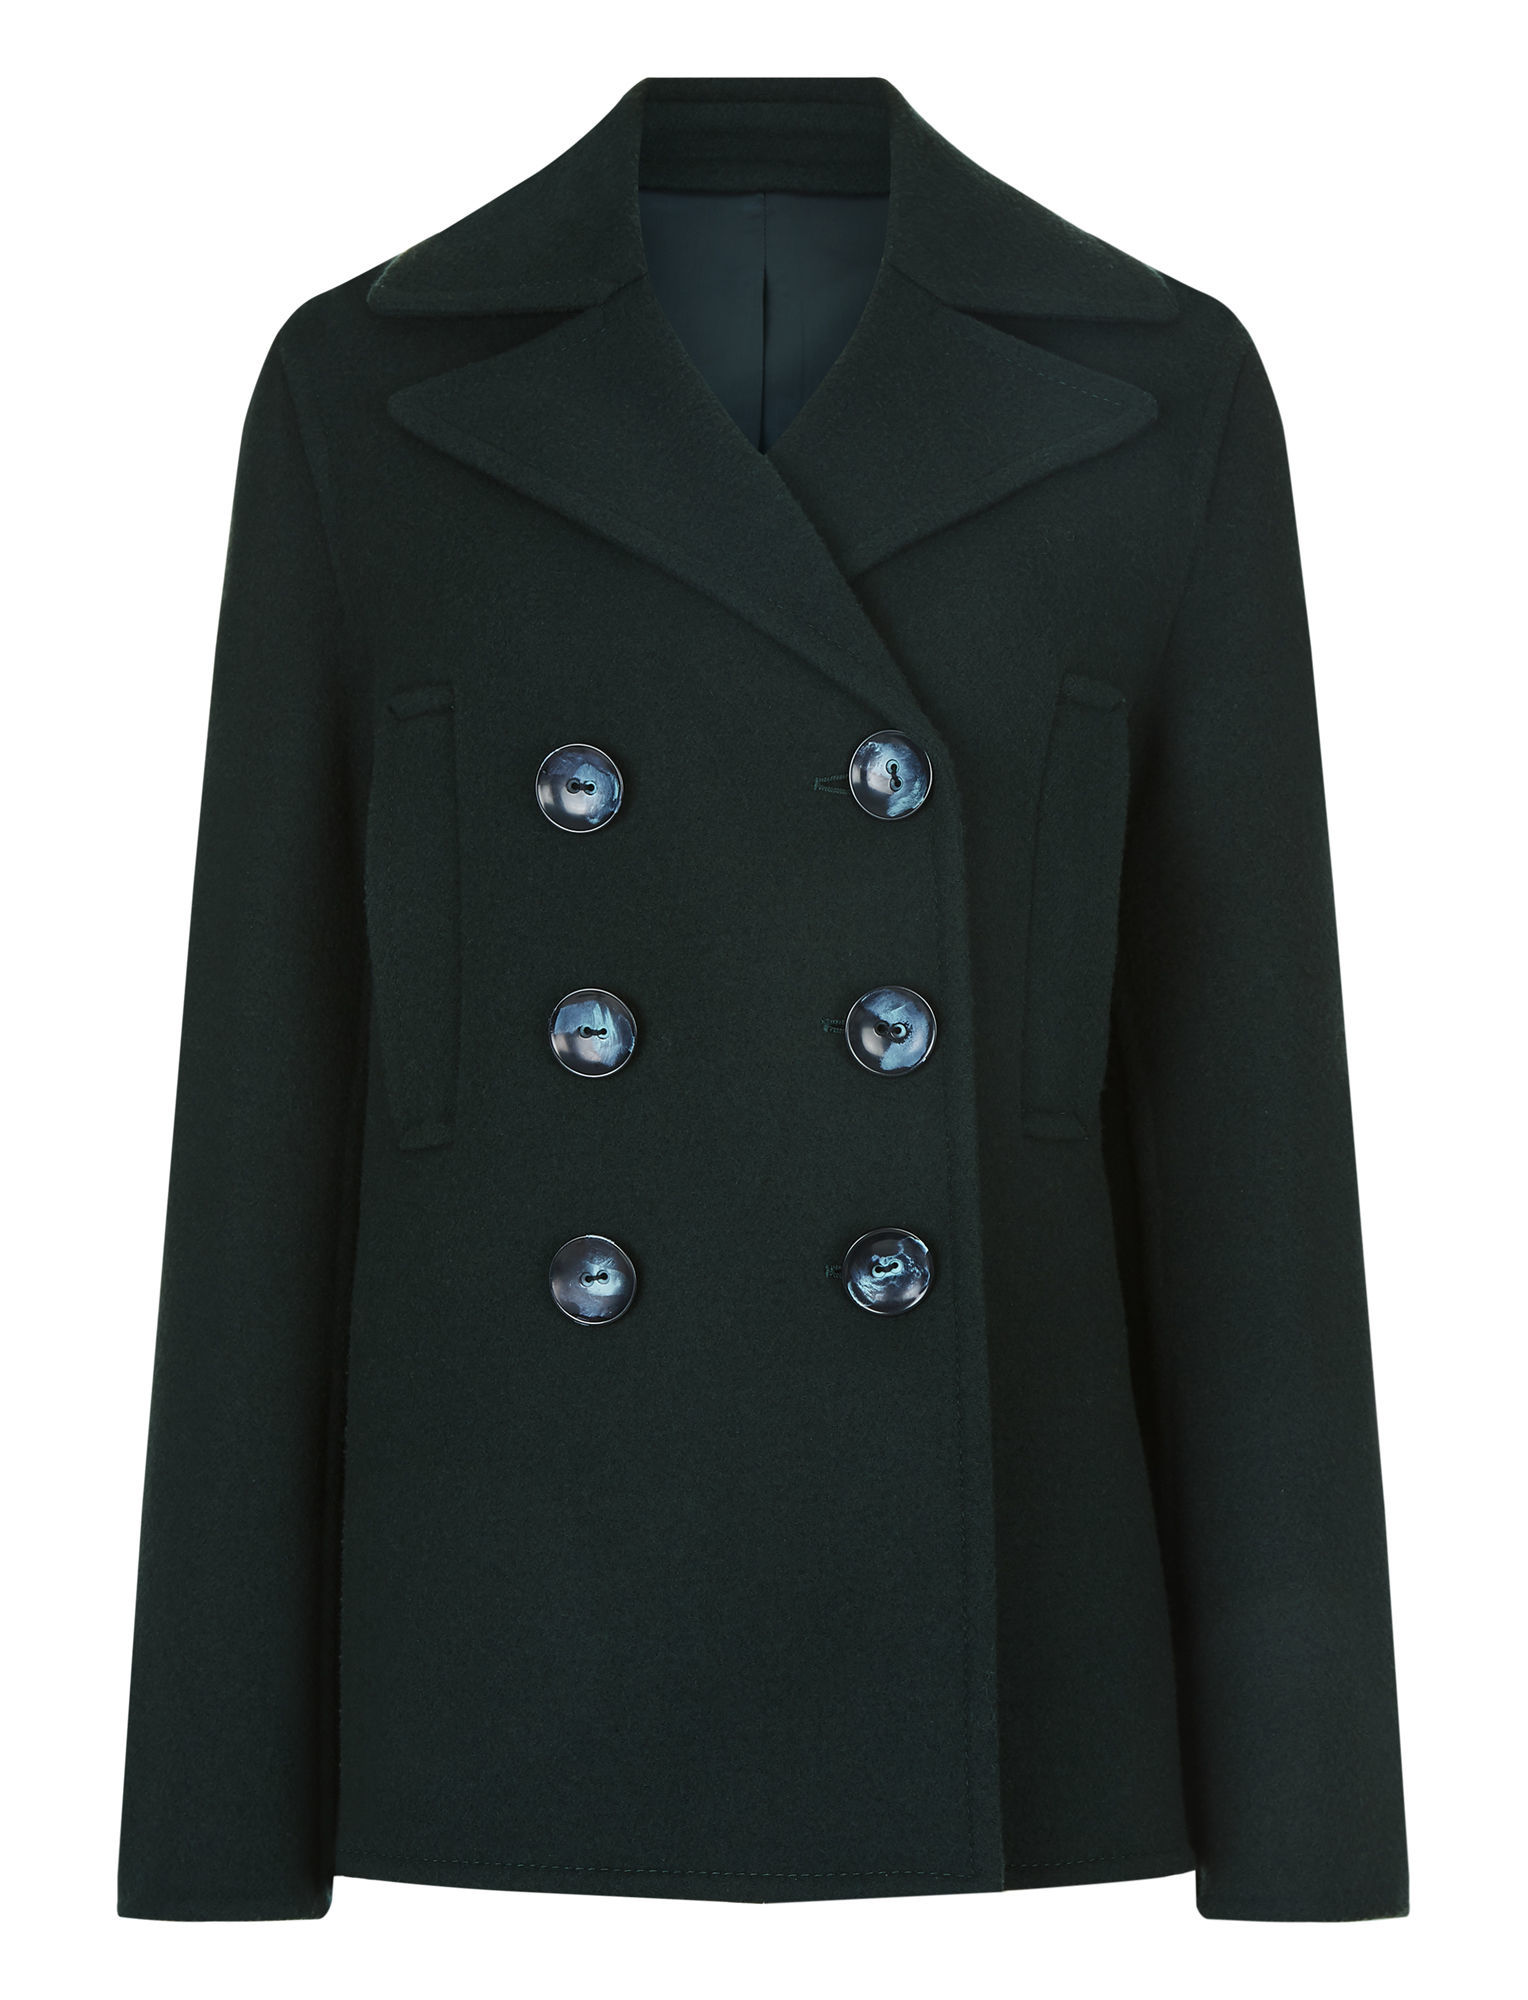 New Hector Short Fitted Pea Coat in Green